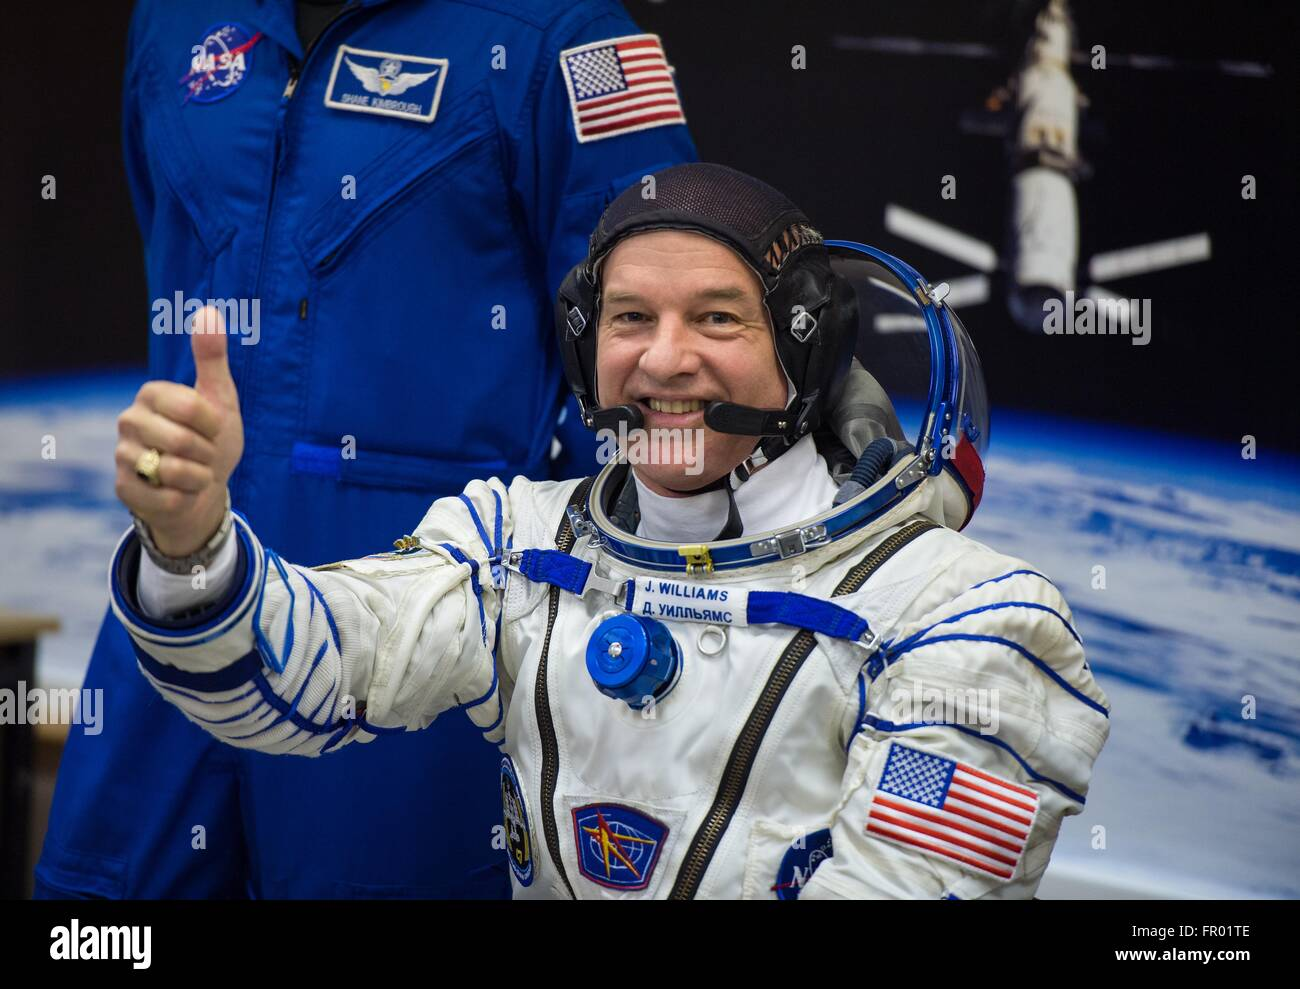 Baikonur, Kazakhstan. 19th Mar, 2016. American astronaut Jeff Williams gives a thumbs up during final pressure checks - Stock Image